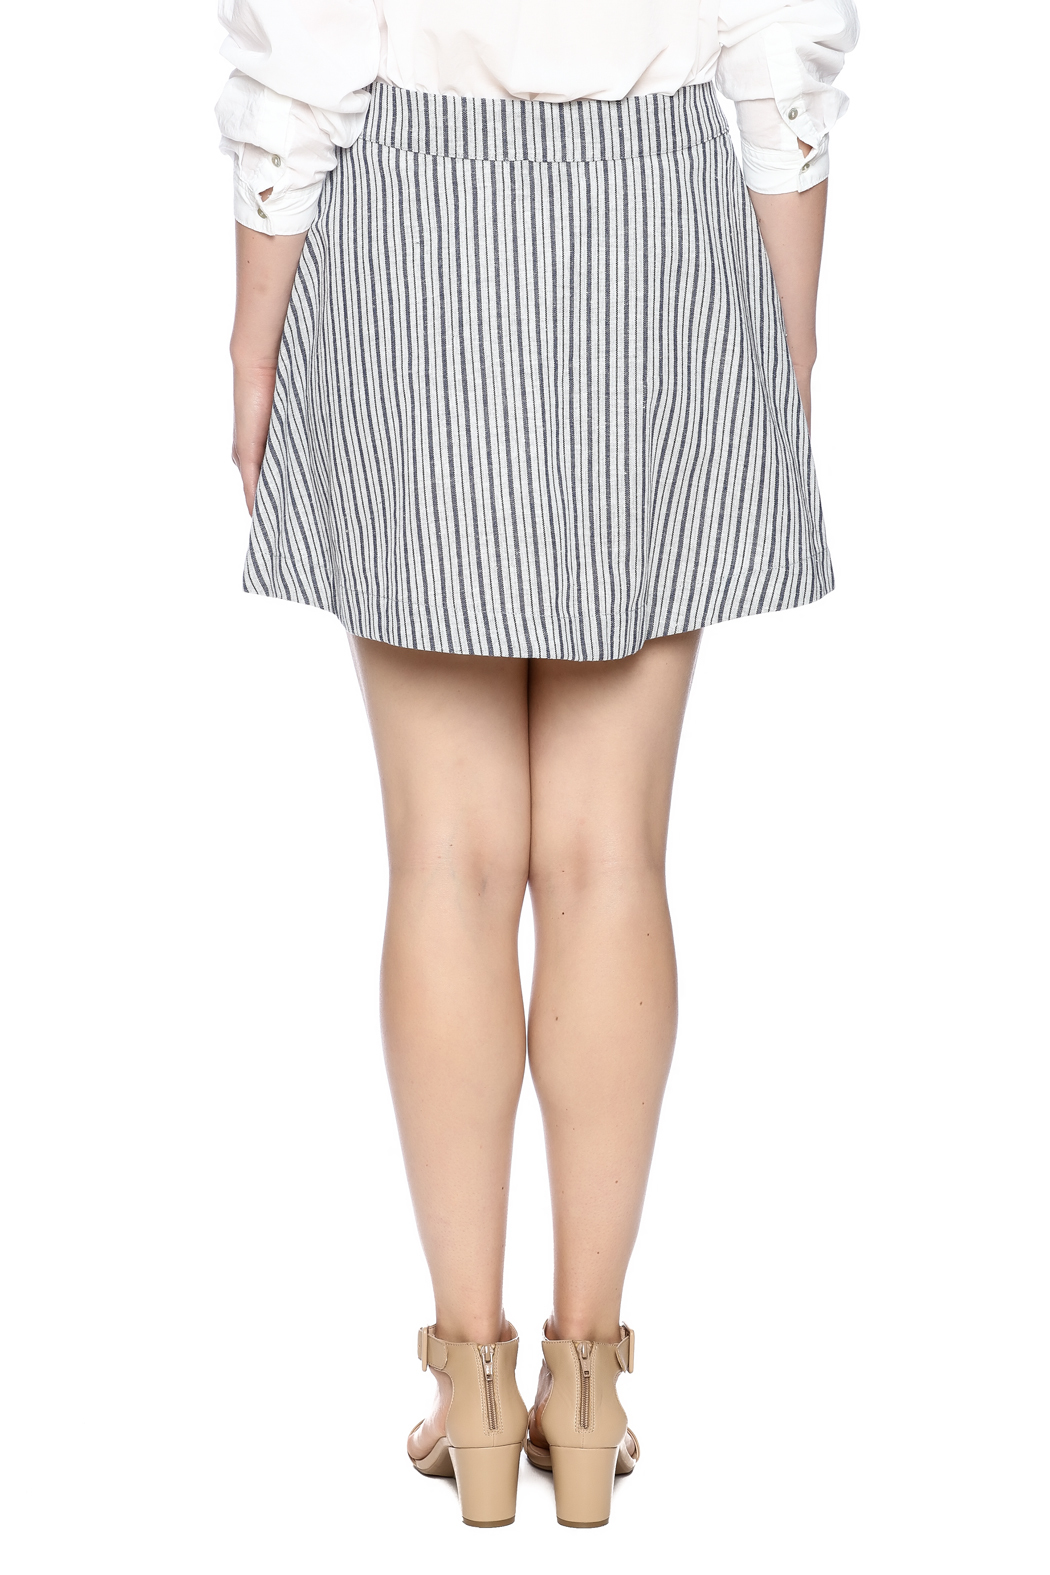 Surreal by Papercrane Striped Denim Skirt from New York by Gado ...